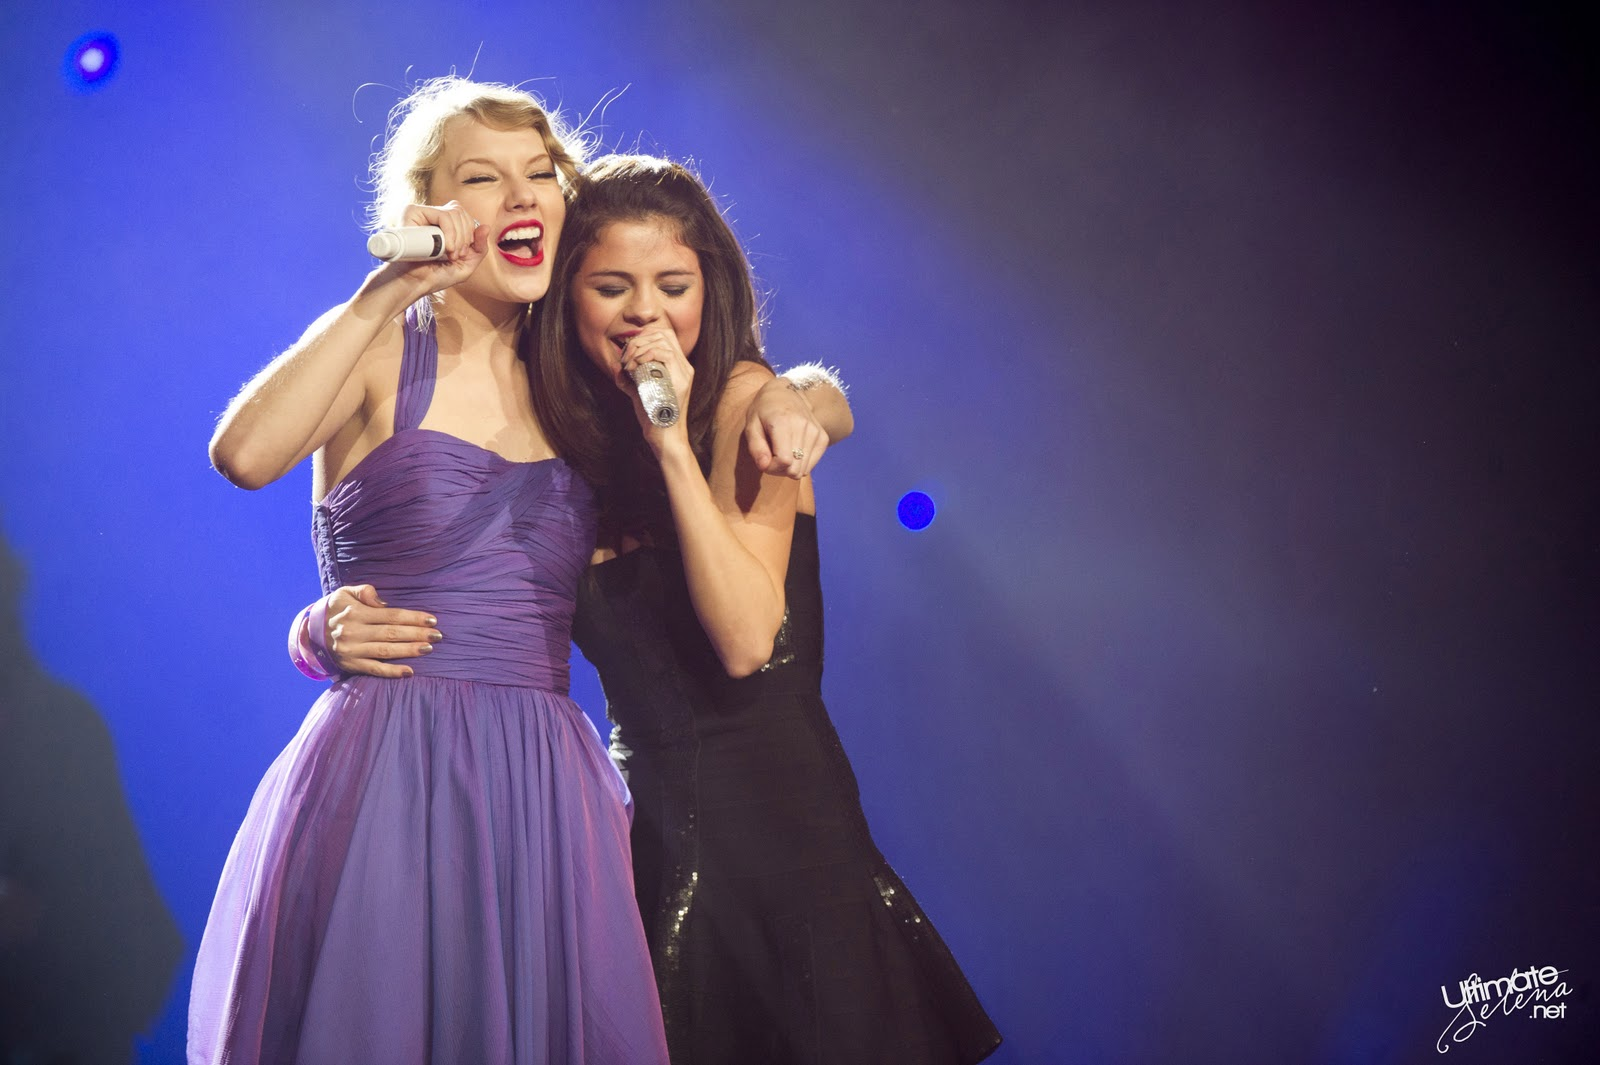 Selena Gomez Performing Who Says At Taylor Swift S Concert New York 11 22 11